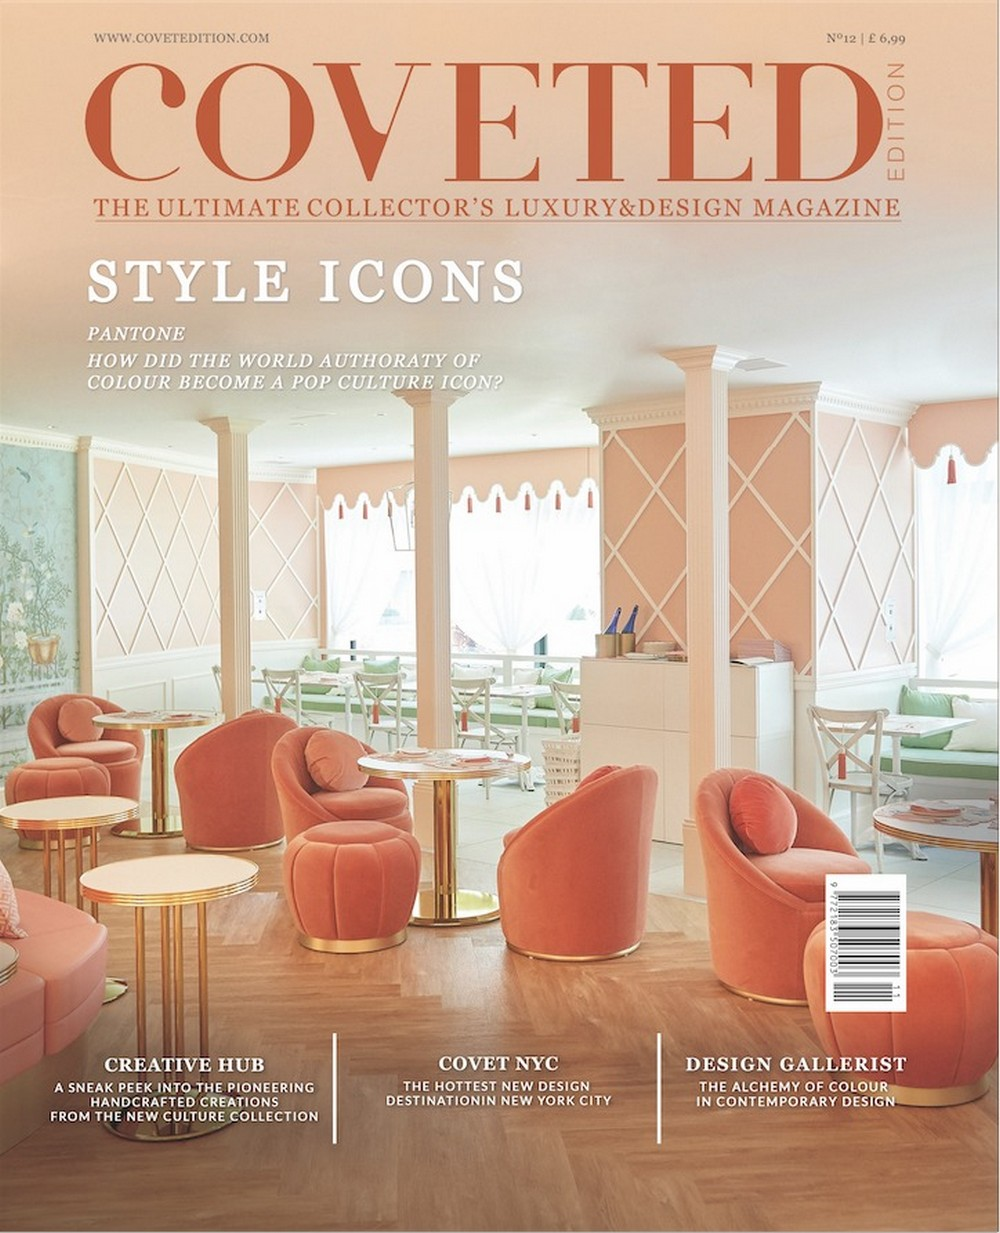 The New Cover Of The CovetED Magazine Is The Best Way To Start The Year! coveted magazine The Cover Of The CovetED Magazine Is The Best Way To Start The Year! WhatsApp Image 2018 12 12 at 17